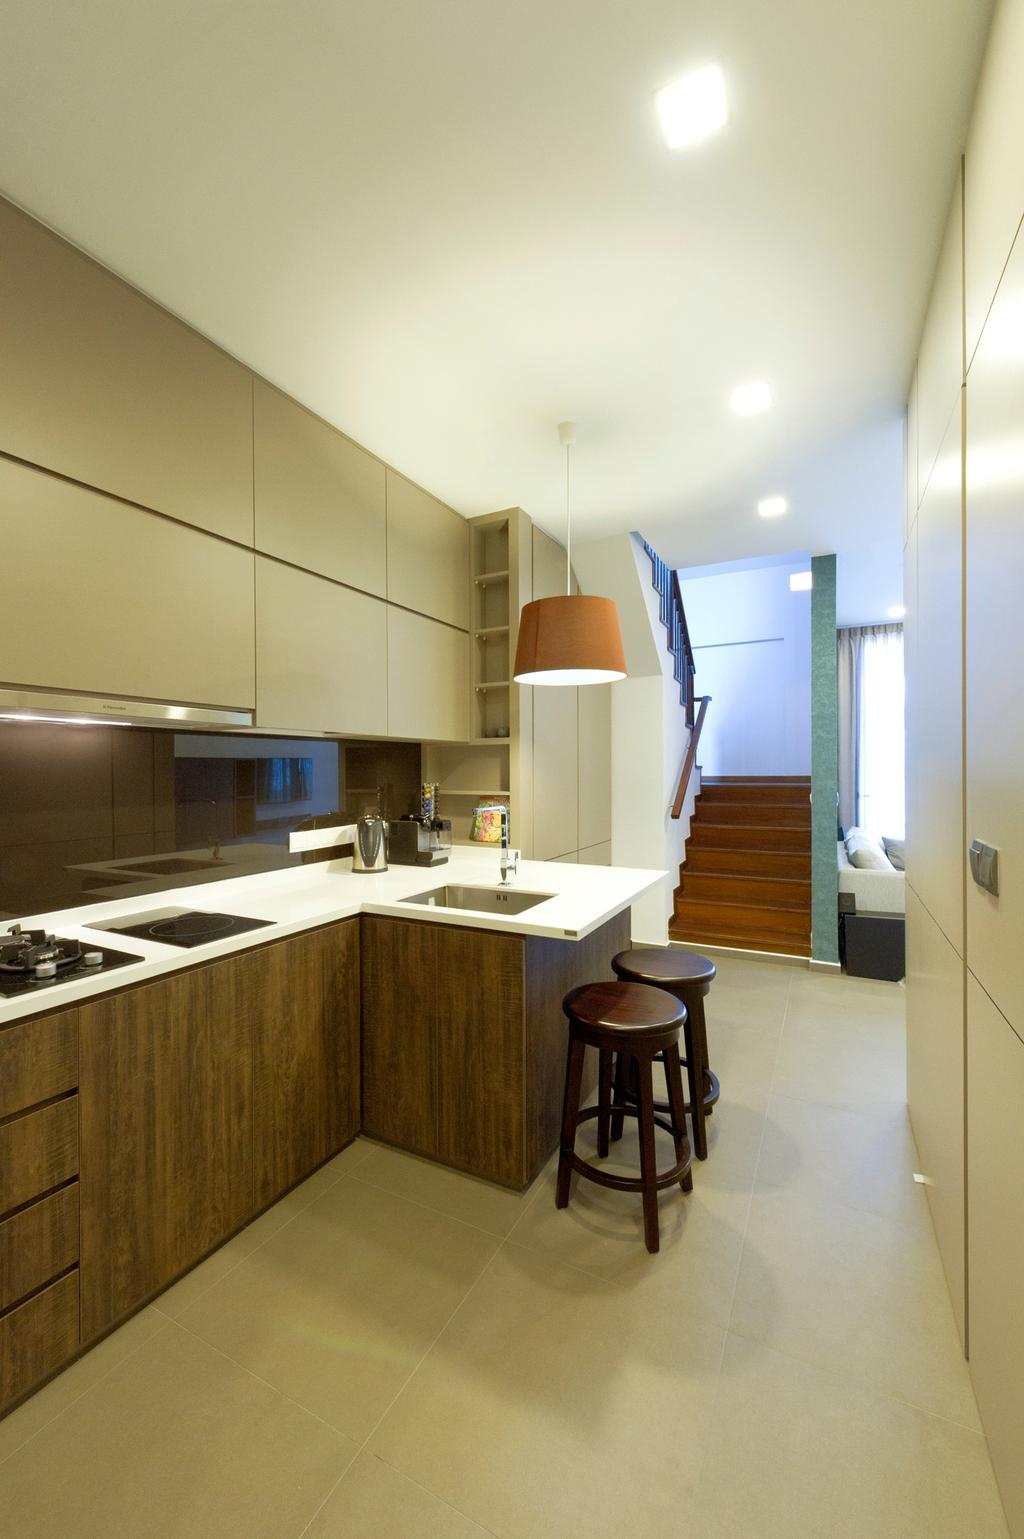 Contemporary, Condo, Kitchen, Parc Elegance, Interior Designer, Dyel Design, Bar Counter, Barstools, Chair, Tile, Tiles, Hanging Light, Lighting, Pendant Light, Cabinet, Kitchen Counter, Wood Laminate, Wood, Laminate, Stairs, Staircase, Handrails, Parquet, Shelf, Shelves, Woodwork, Bar Stool, Furniture, Bathroom, Indoors, Interior Design, Room, Banister, Handrail, Sink